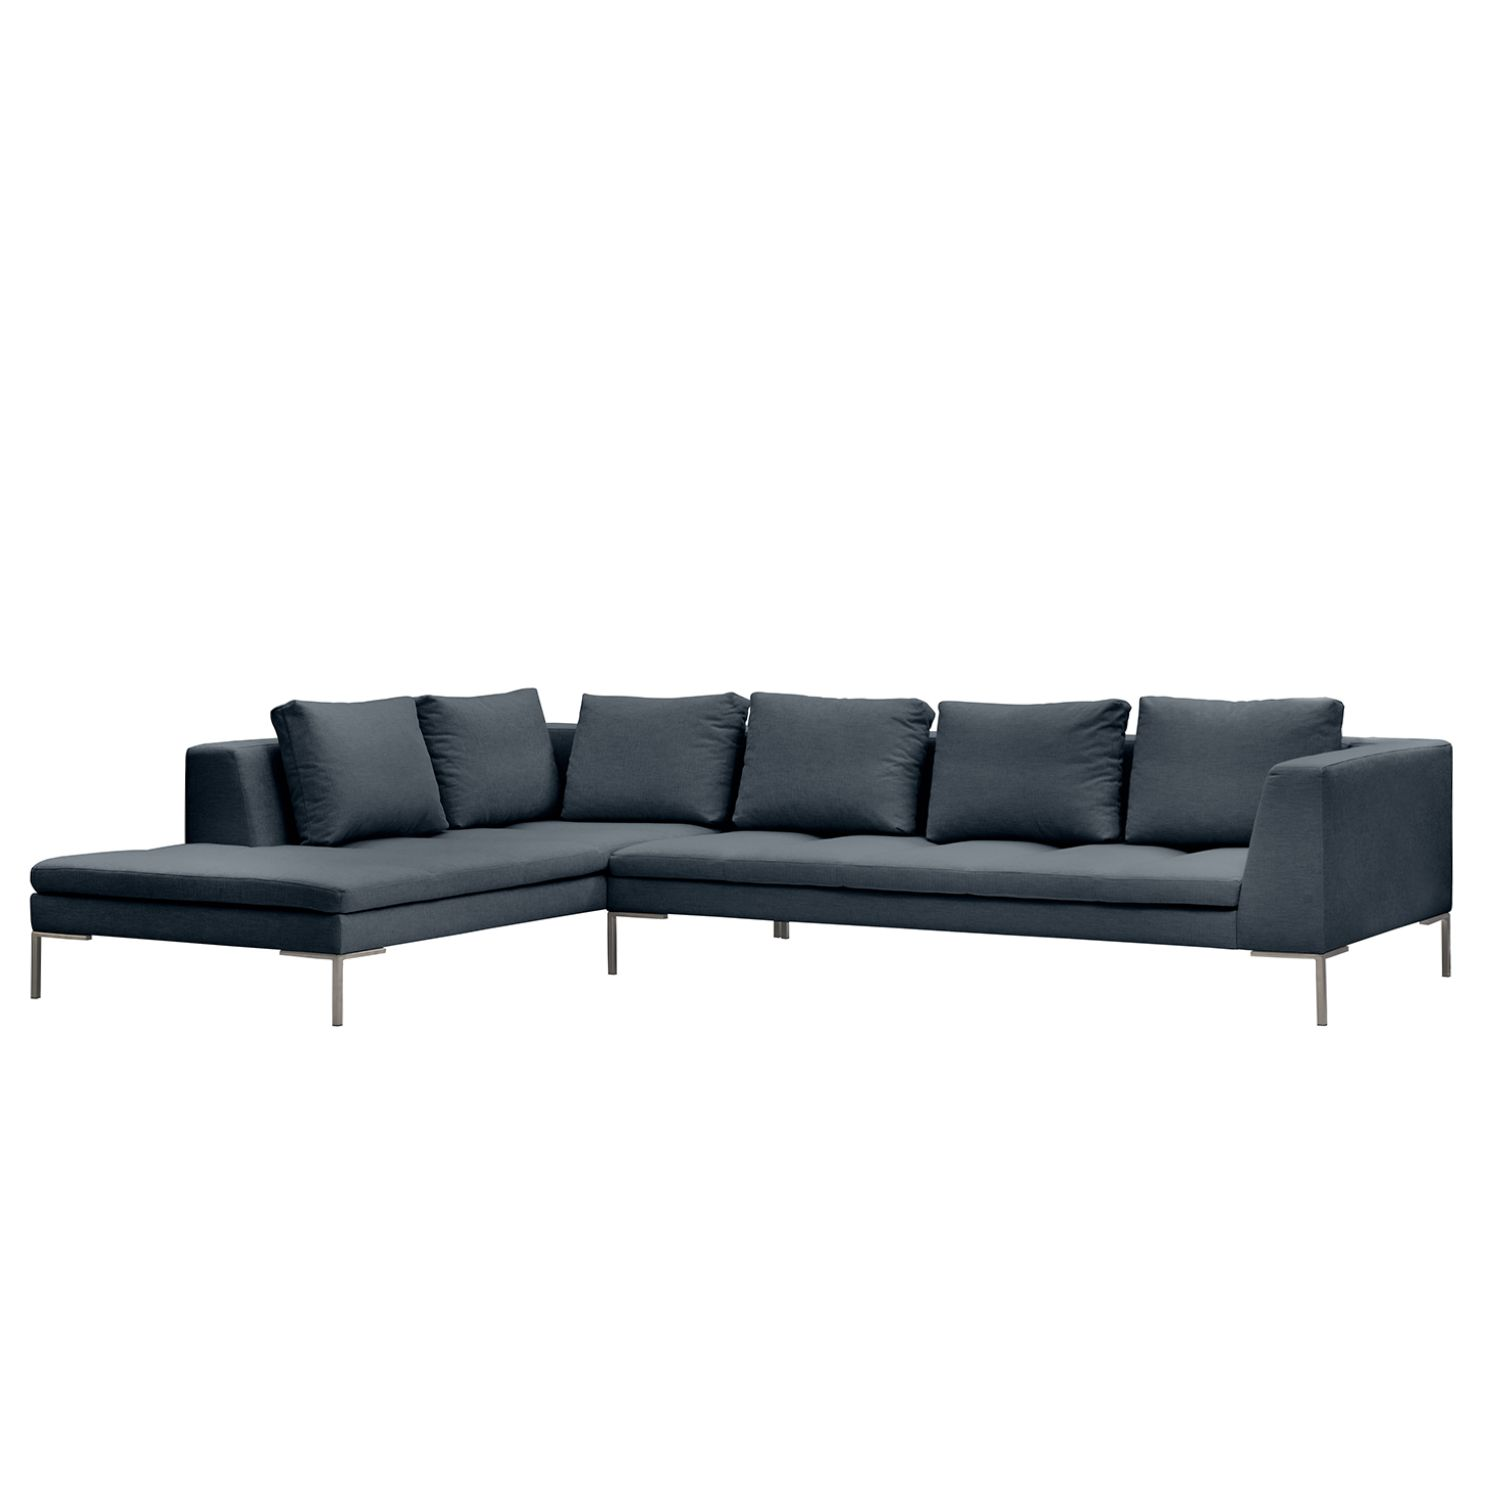 chesterfield sofa ebay images chesterfield black sofa. Black Bedroom Furniture Sets. Home Design Ideas